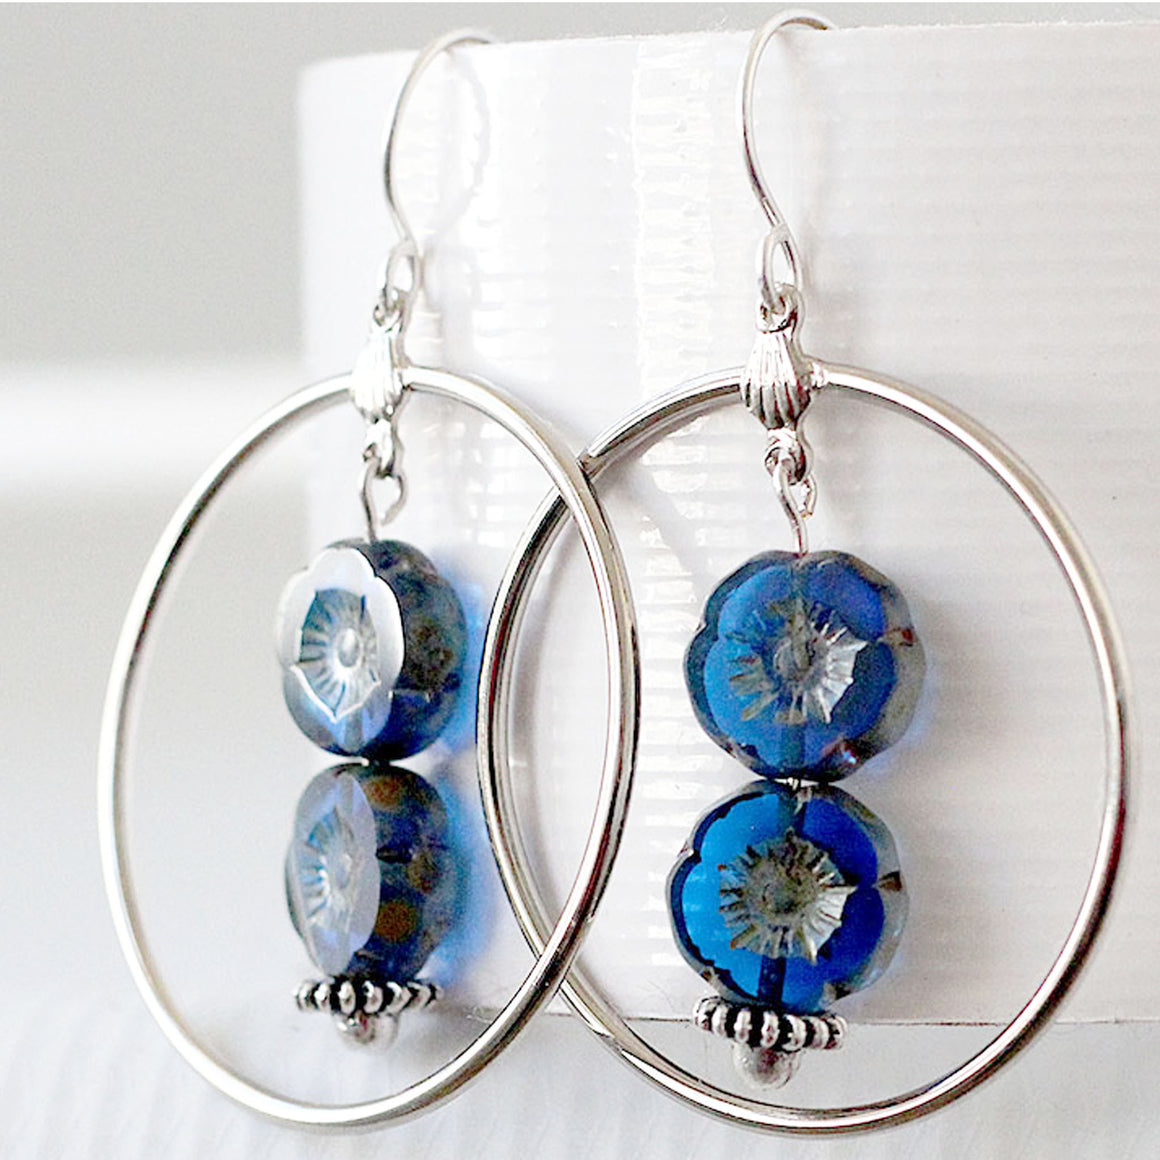 Large Hoop Earrings Silver with Cobalt Blue Flower Beads close up